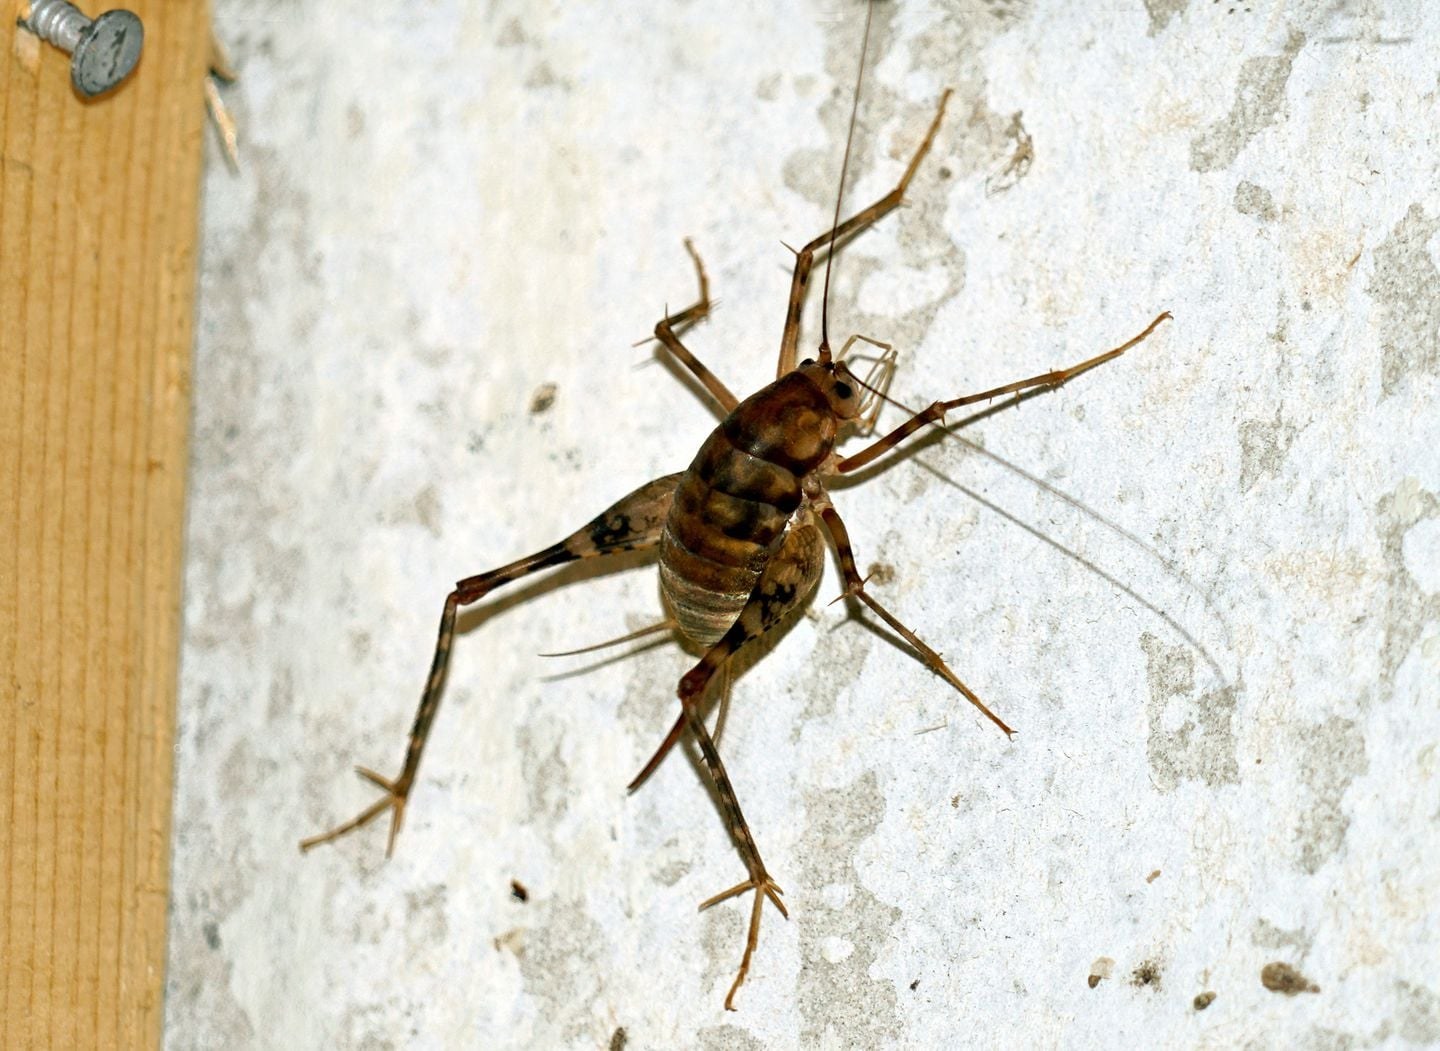 What Are Spider Crickets - Image By The Washington Post